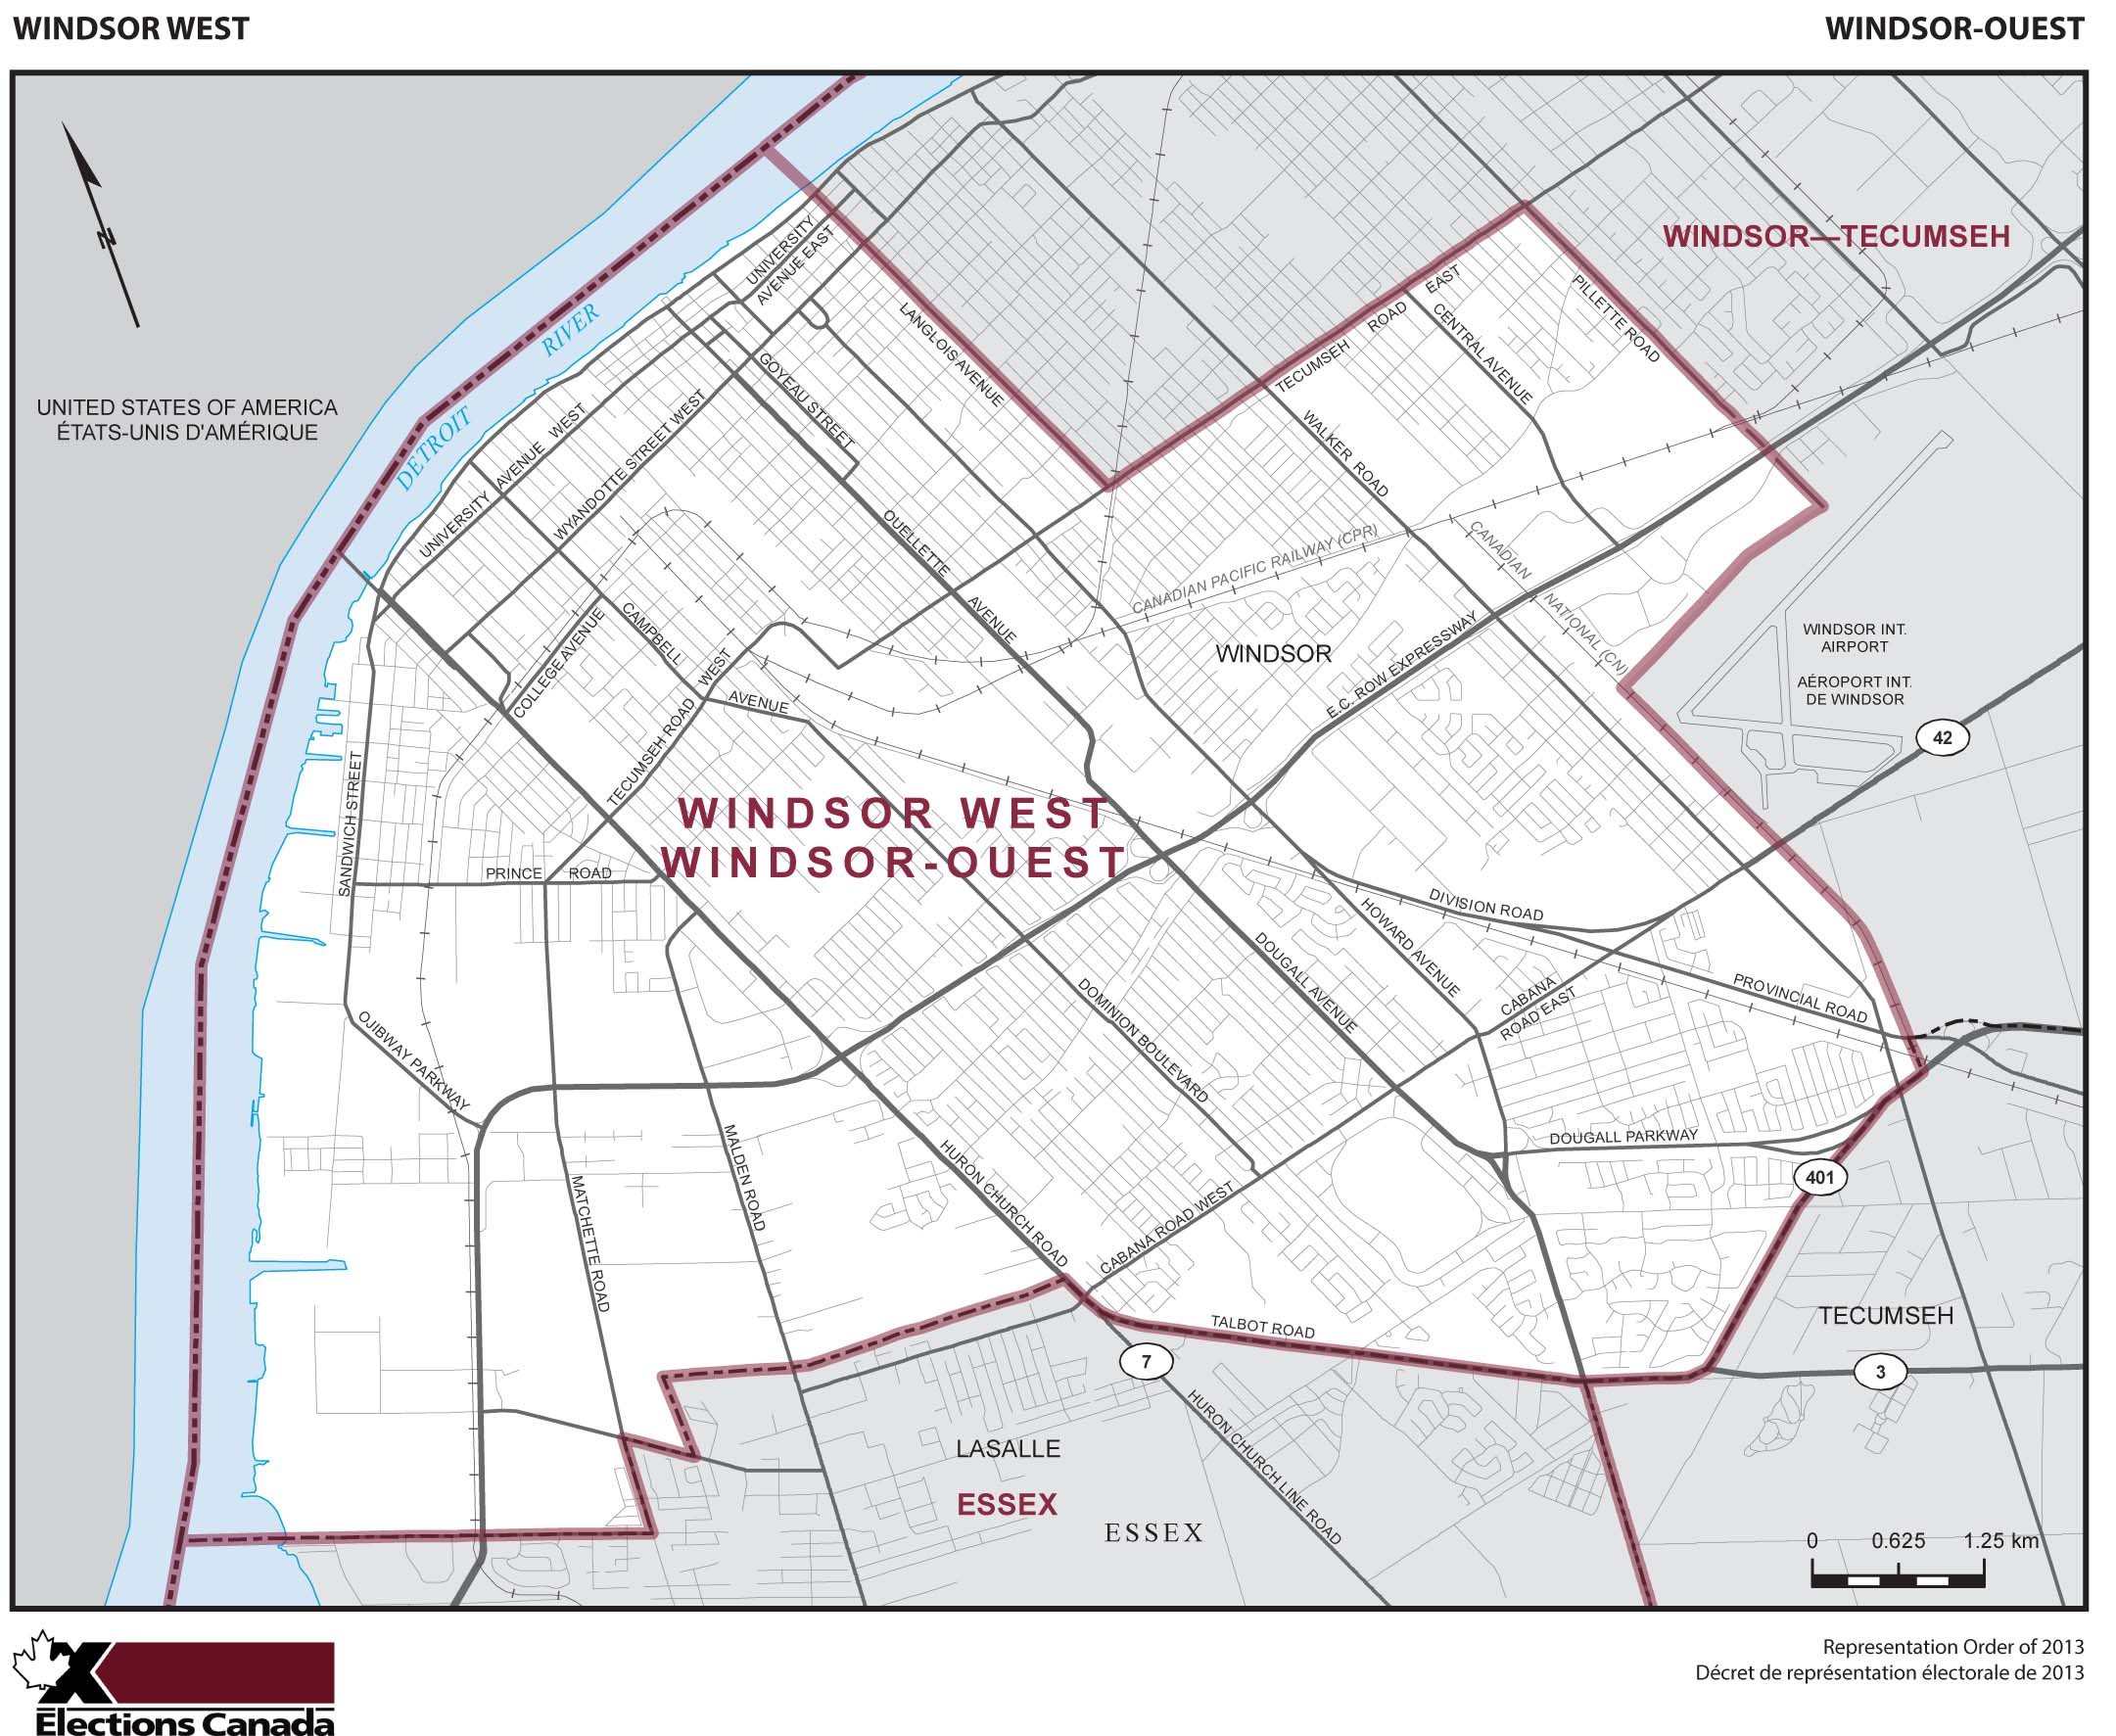 Map: Windsor West, Federal electoral district, 2013 Representation Order (in white), Ontario